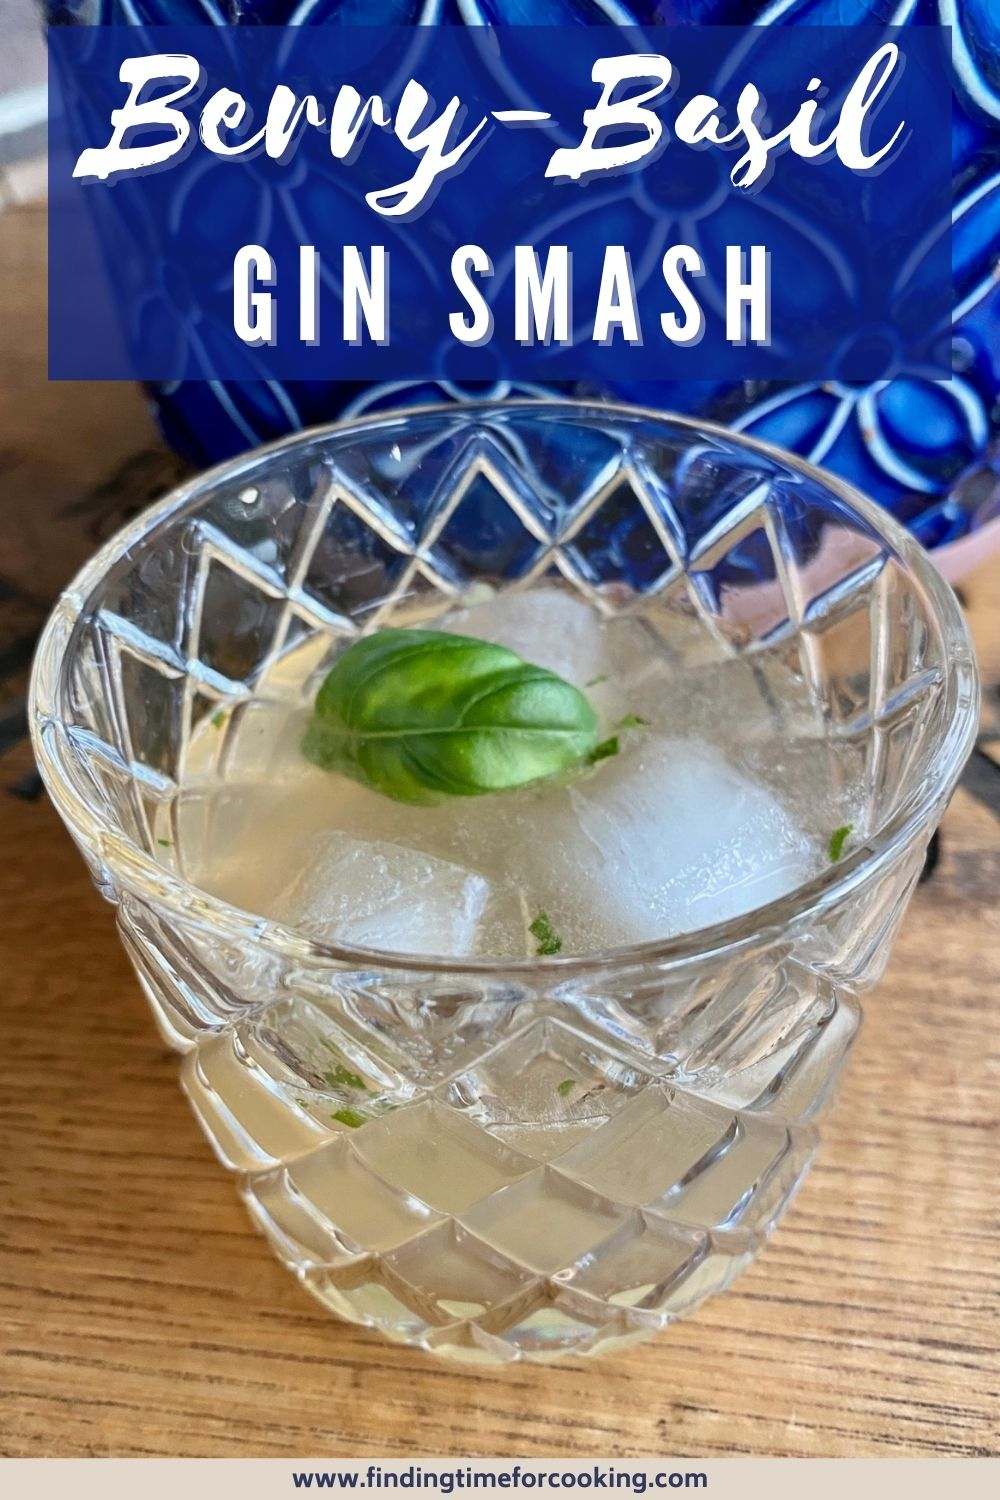 Berry-Basil Smash, a Refreshing Gin Cocktail | This delicious gin cocktail with Chambord, lemon juice, and fresh basil is a perfect spring drink or summer cocktail when fresh basil is plentiful, but is wonderful all year.  Easy gin cocktail, easy cocktail with basil.  #drinkrecipe #cocktail #basil #gin #smashcocktail